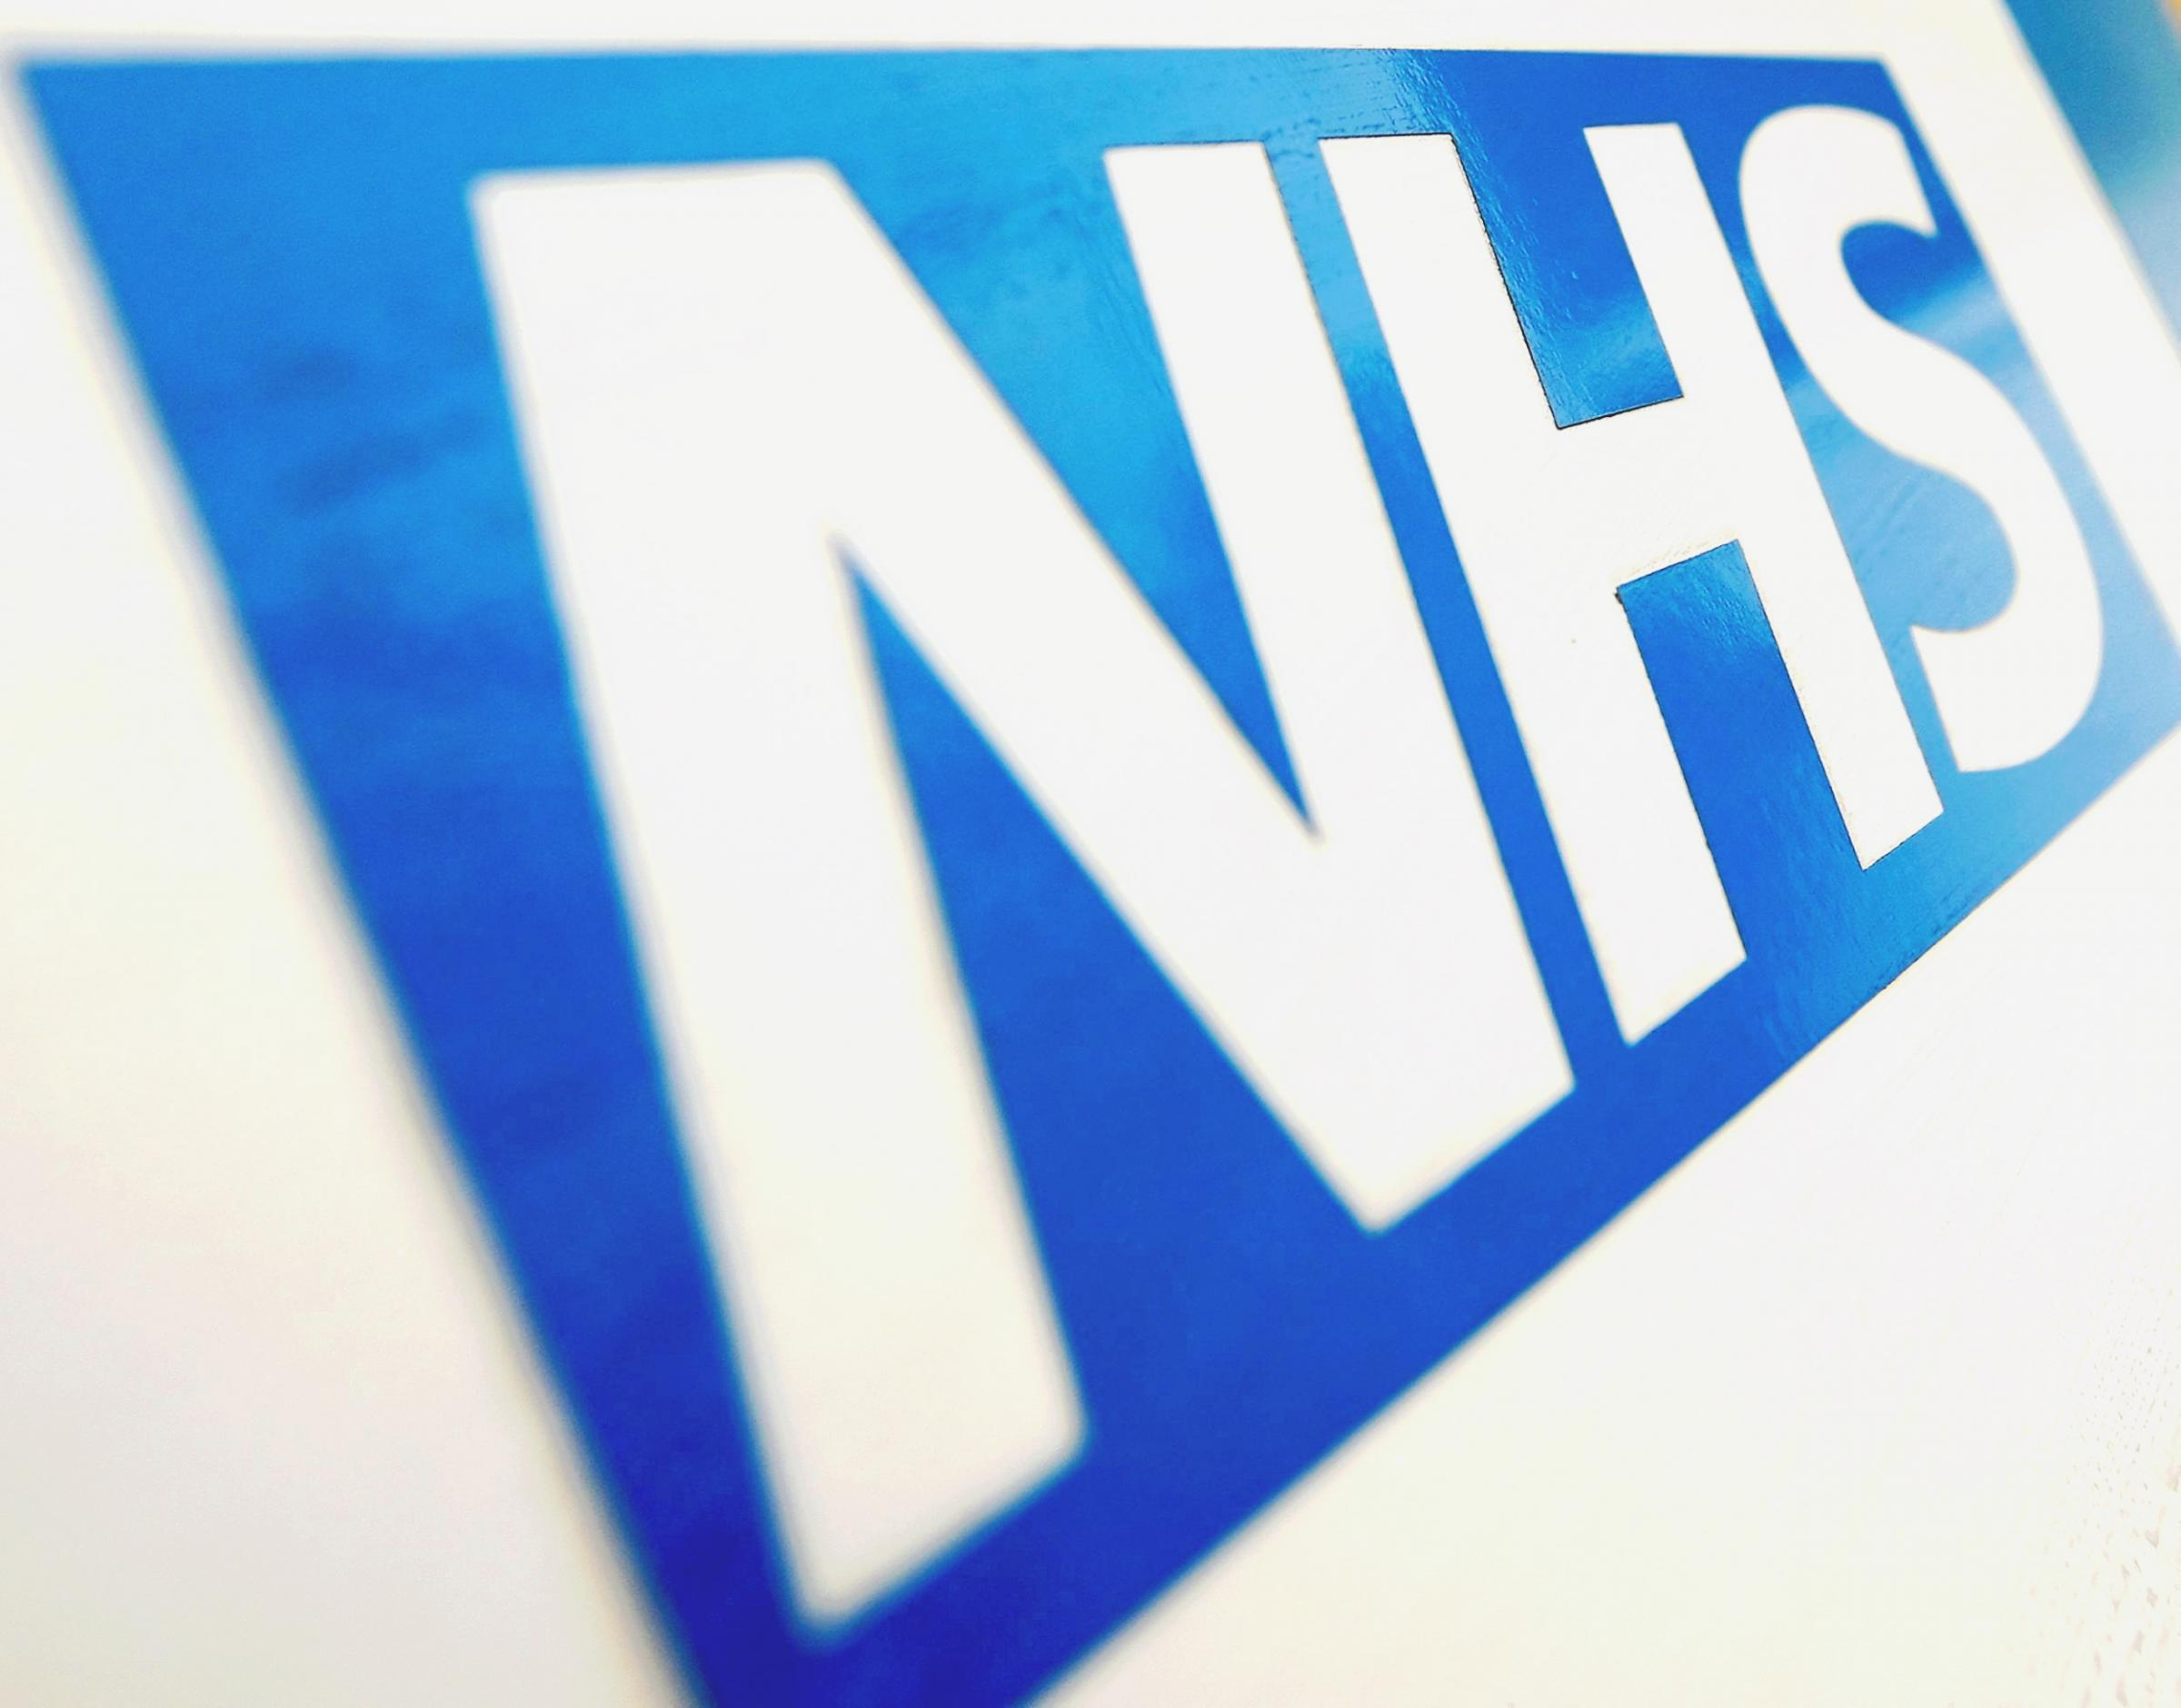 Call to help shape NHS services in county